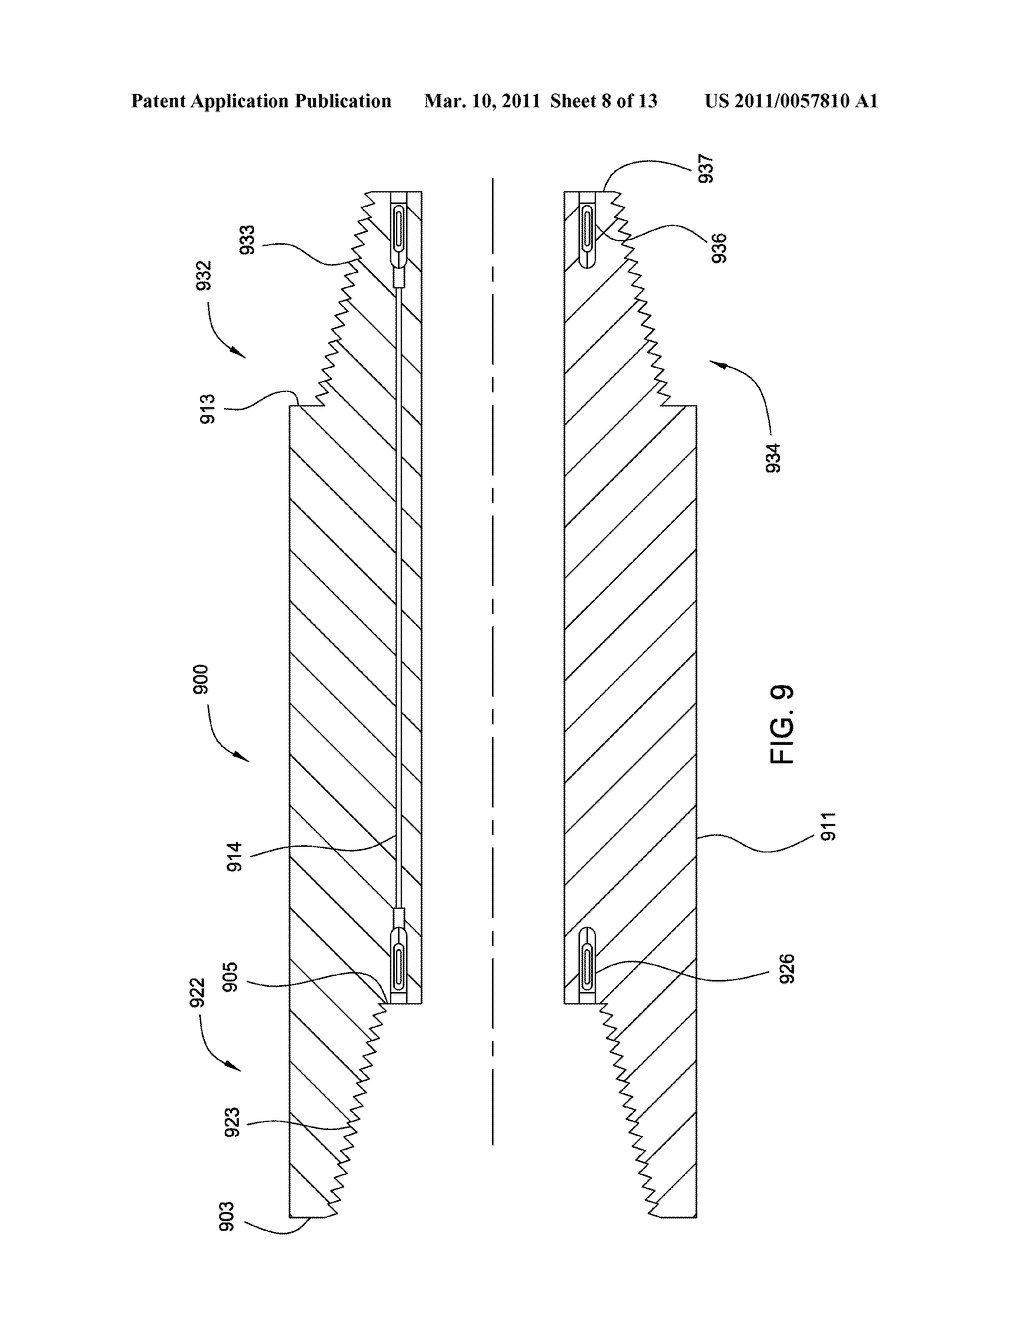 wired drill pipe connection for single shouldered application and wired drill pipe connection for single shouldered application and bha elements diagram schematic and image 09